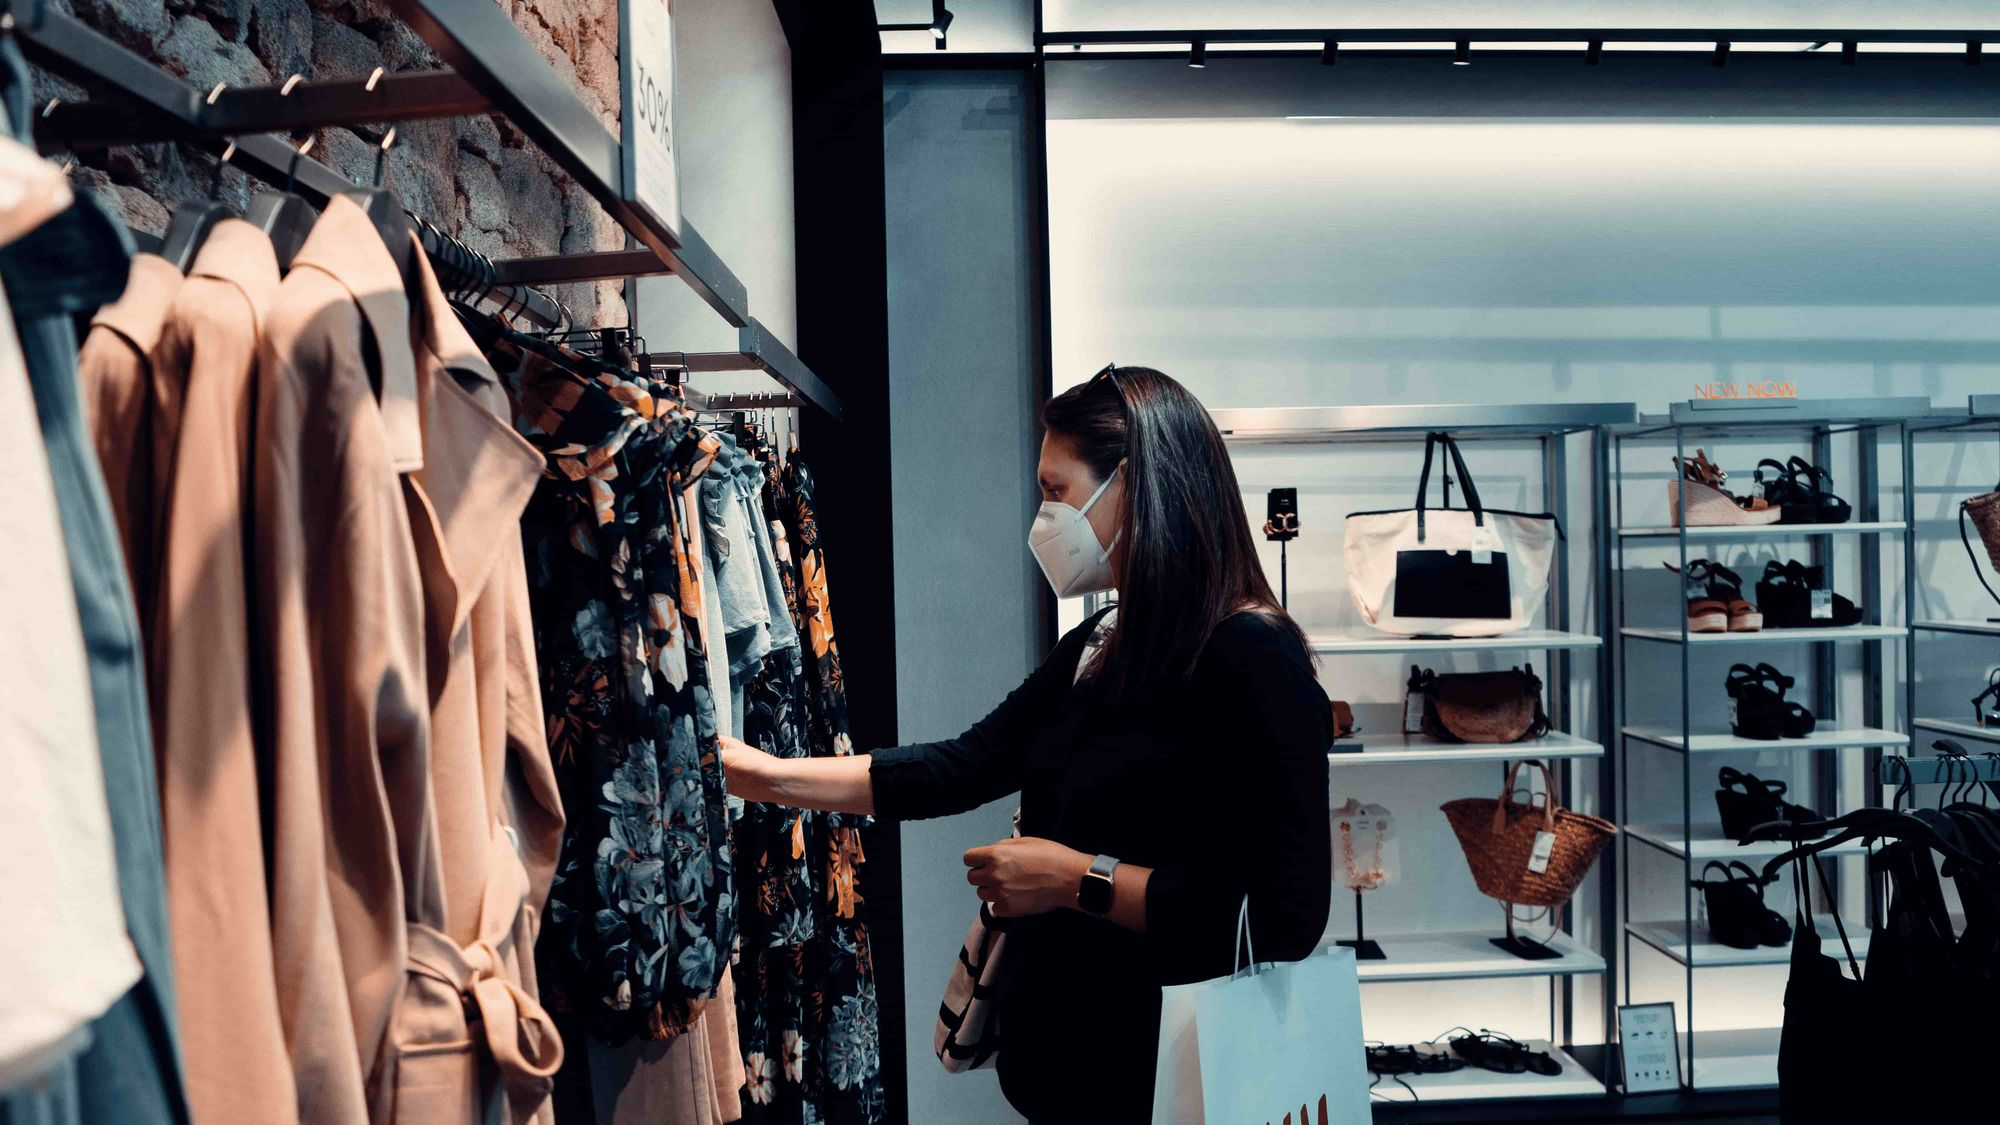 A woman in a store looking at and holding clothes